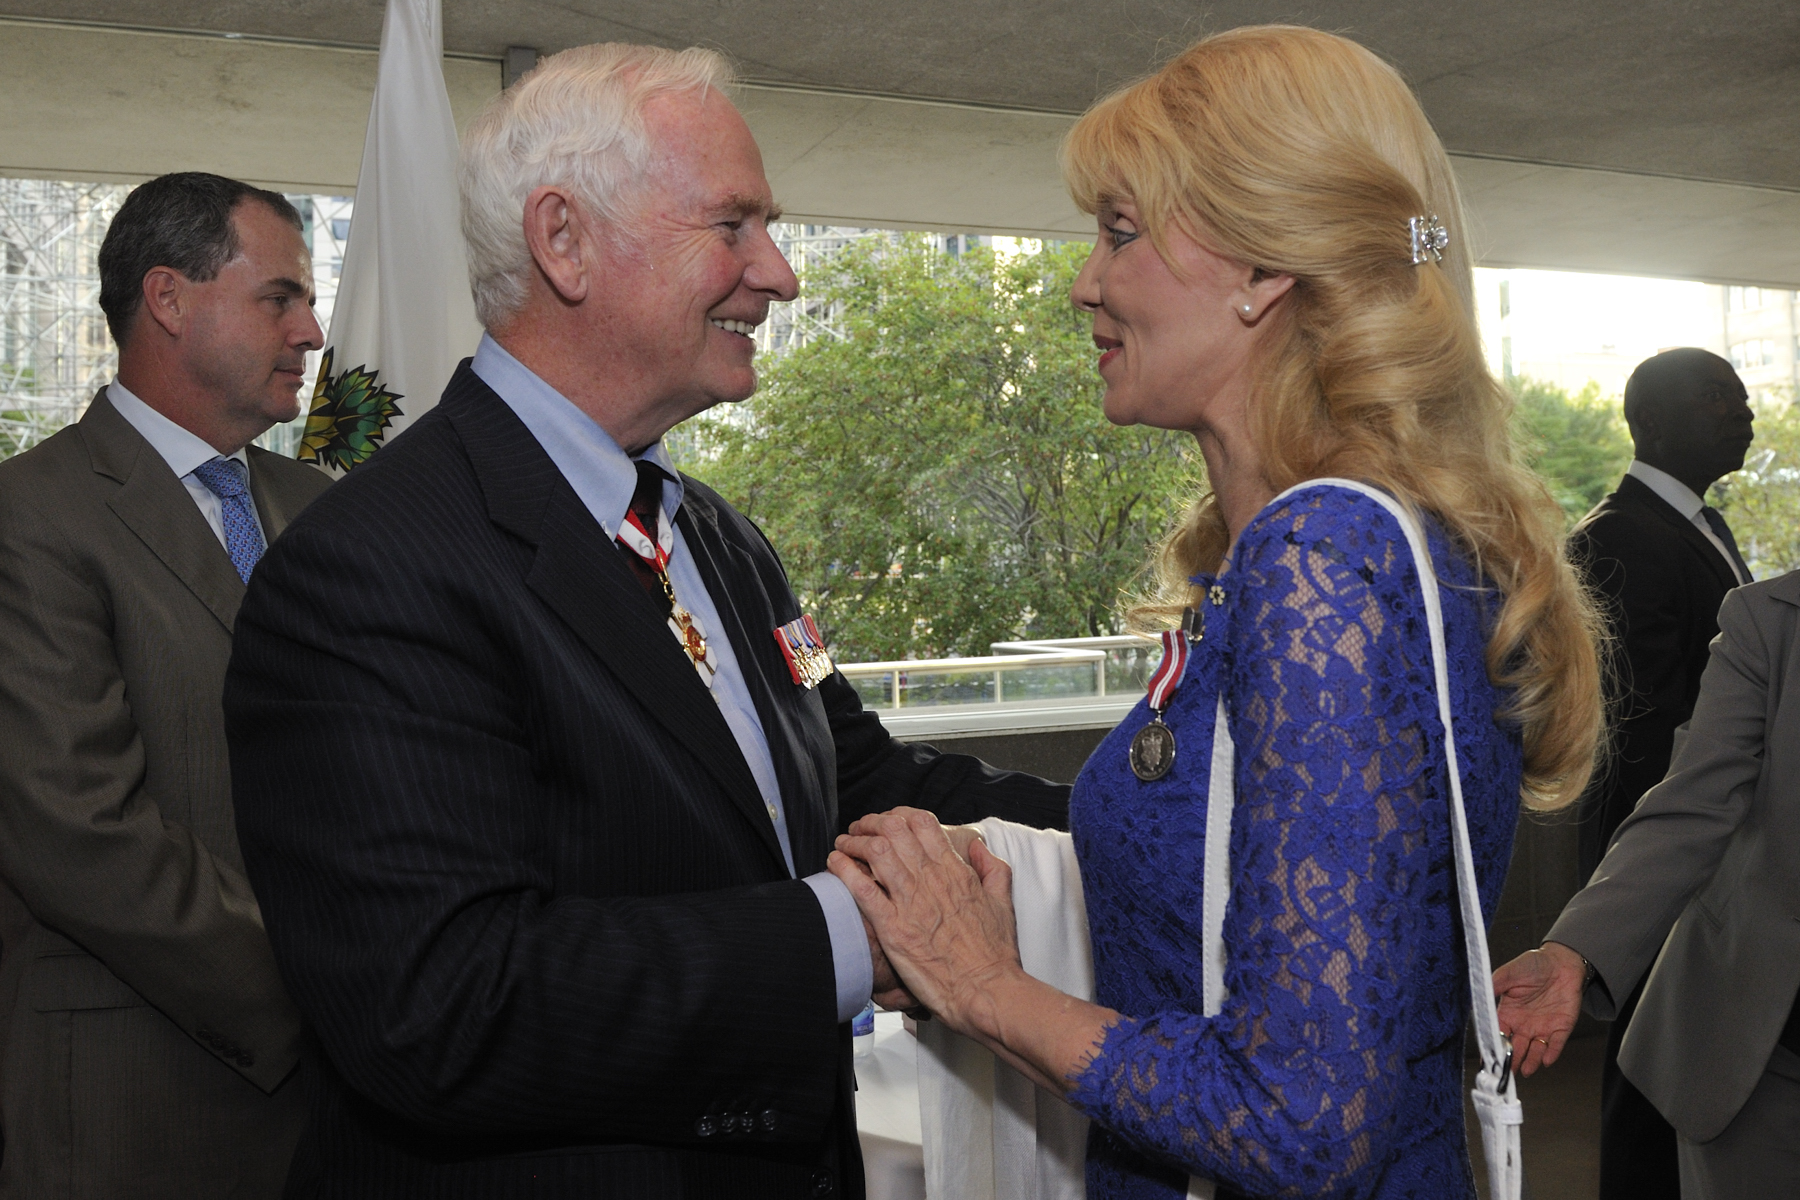 Liona Boyd, C.M., interpreter and virtuoso performer of classical works and Member of the Order of Canada, was also presented with the Diamond Jubilee Medal.